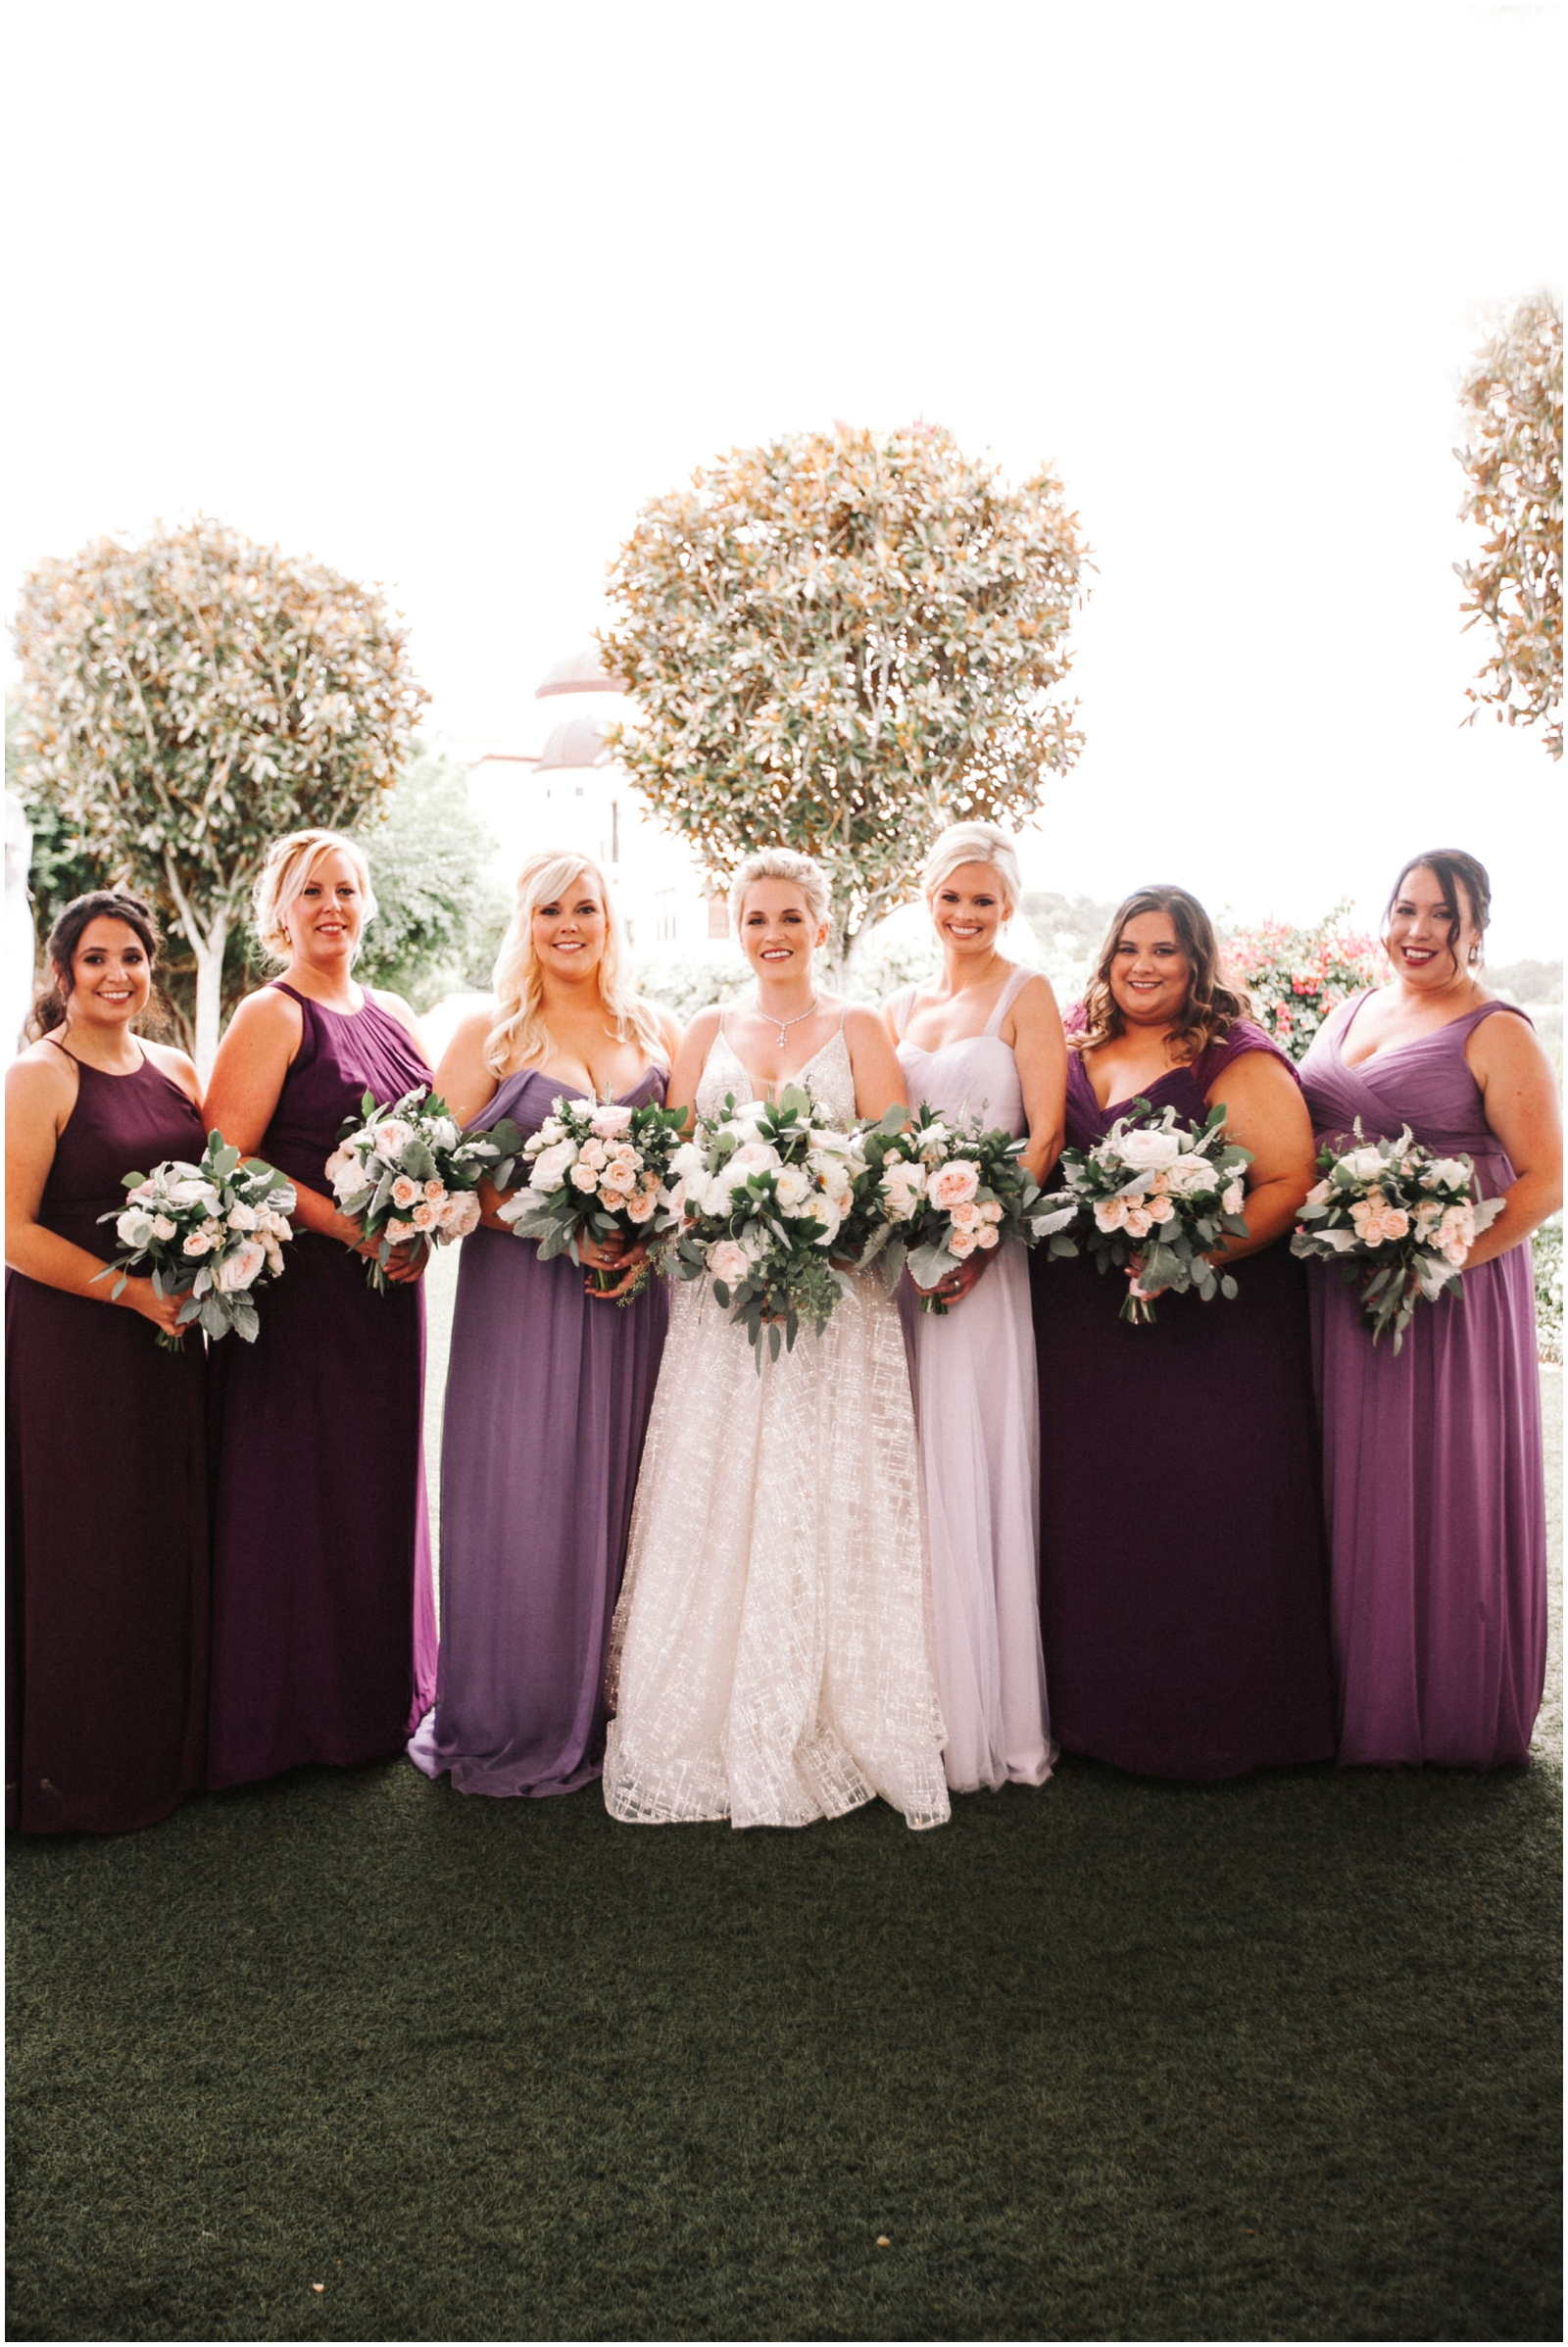 Bride and her bridesmaids holding their white wedding bouquets